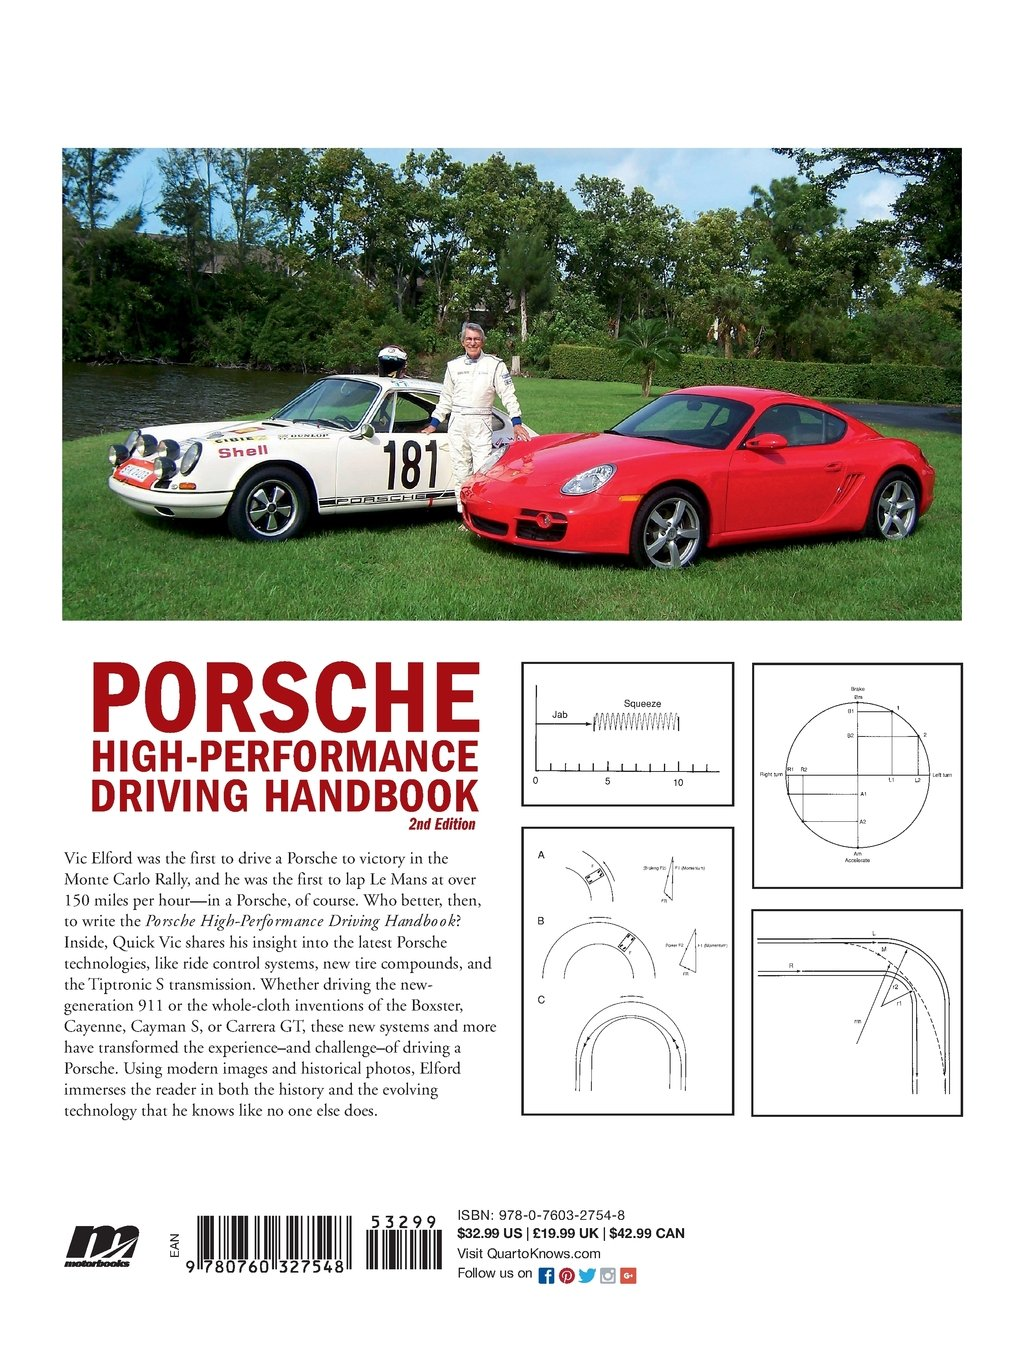 Porsche High Performance Driving Handbook Vic Elford 2nd Generation Firebird 8 Track Wiring Diagram 0752748327542 Books